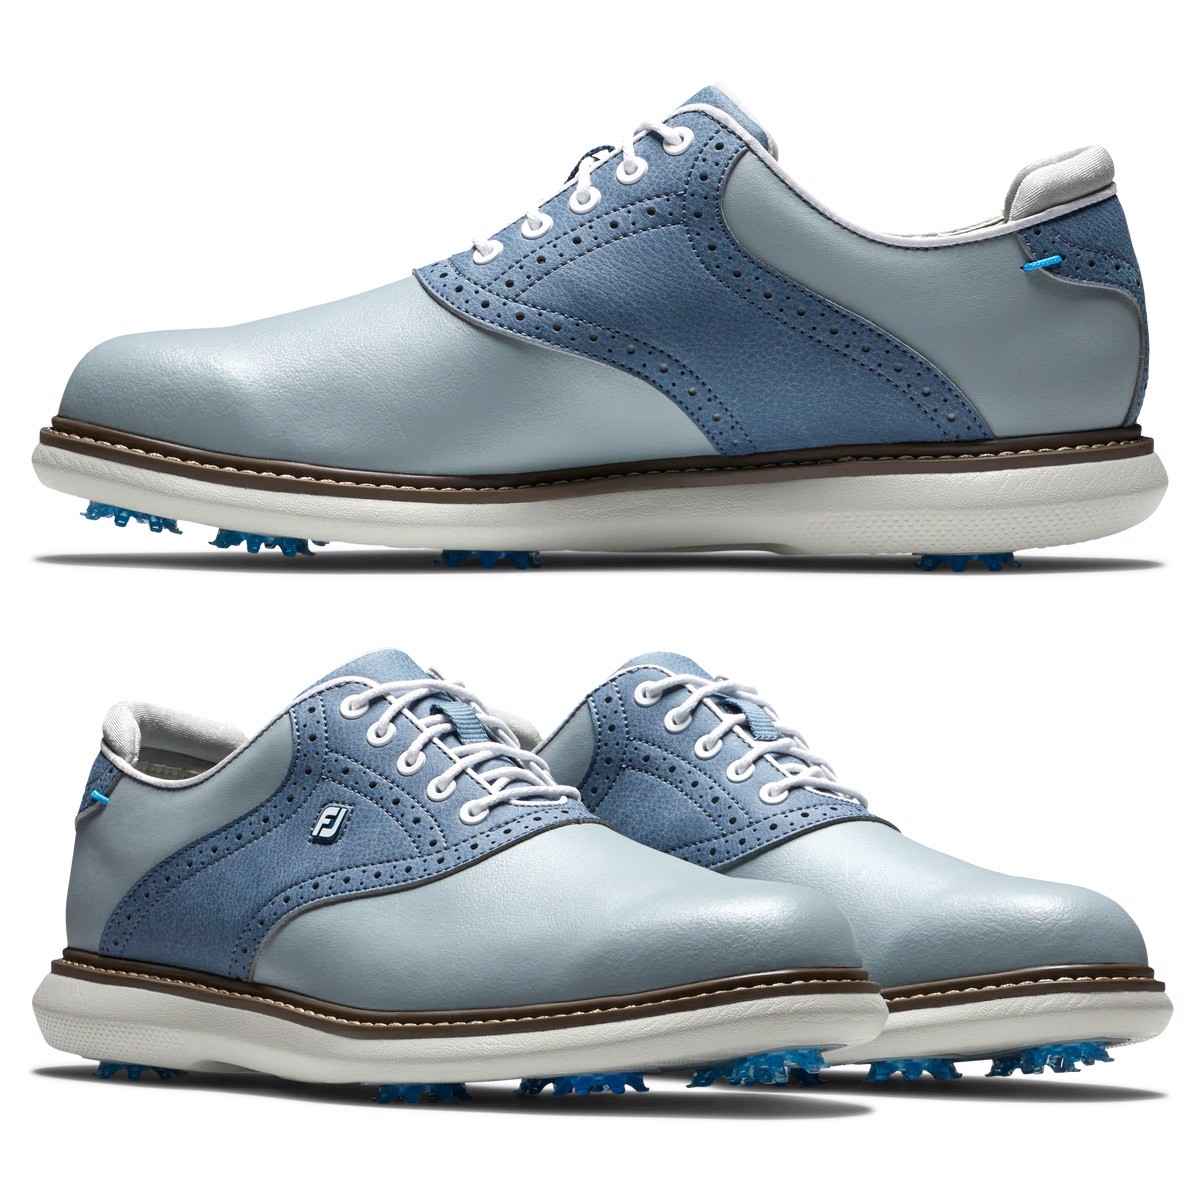 Giày golf nam Traditions 57902 Extra Wide, Spiked, Xám Navi | FootJoy